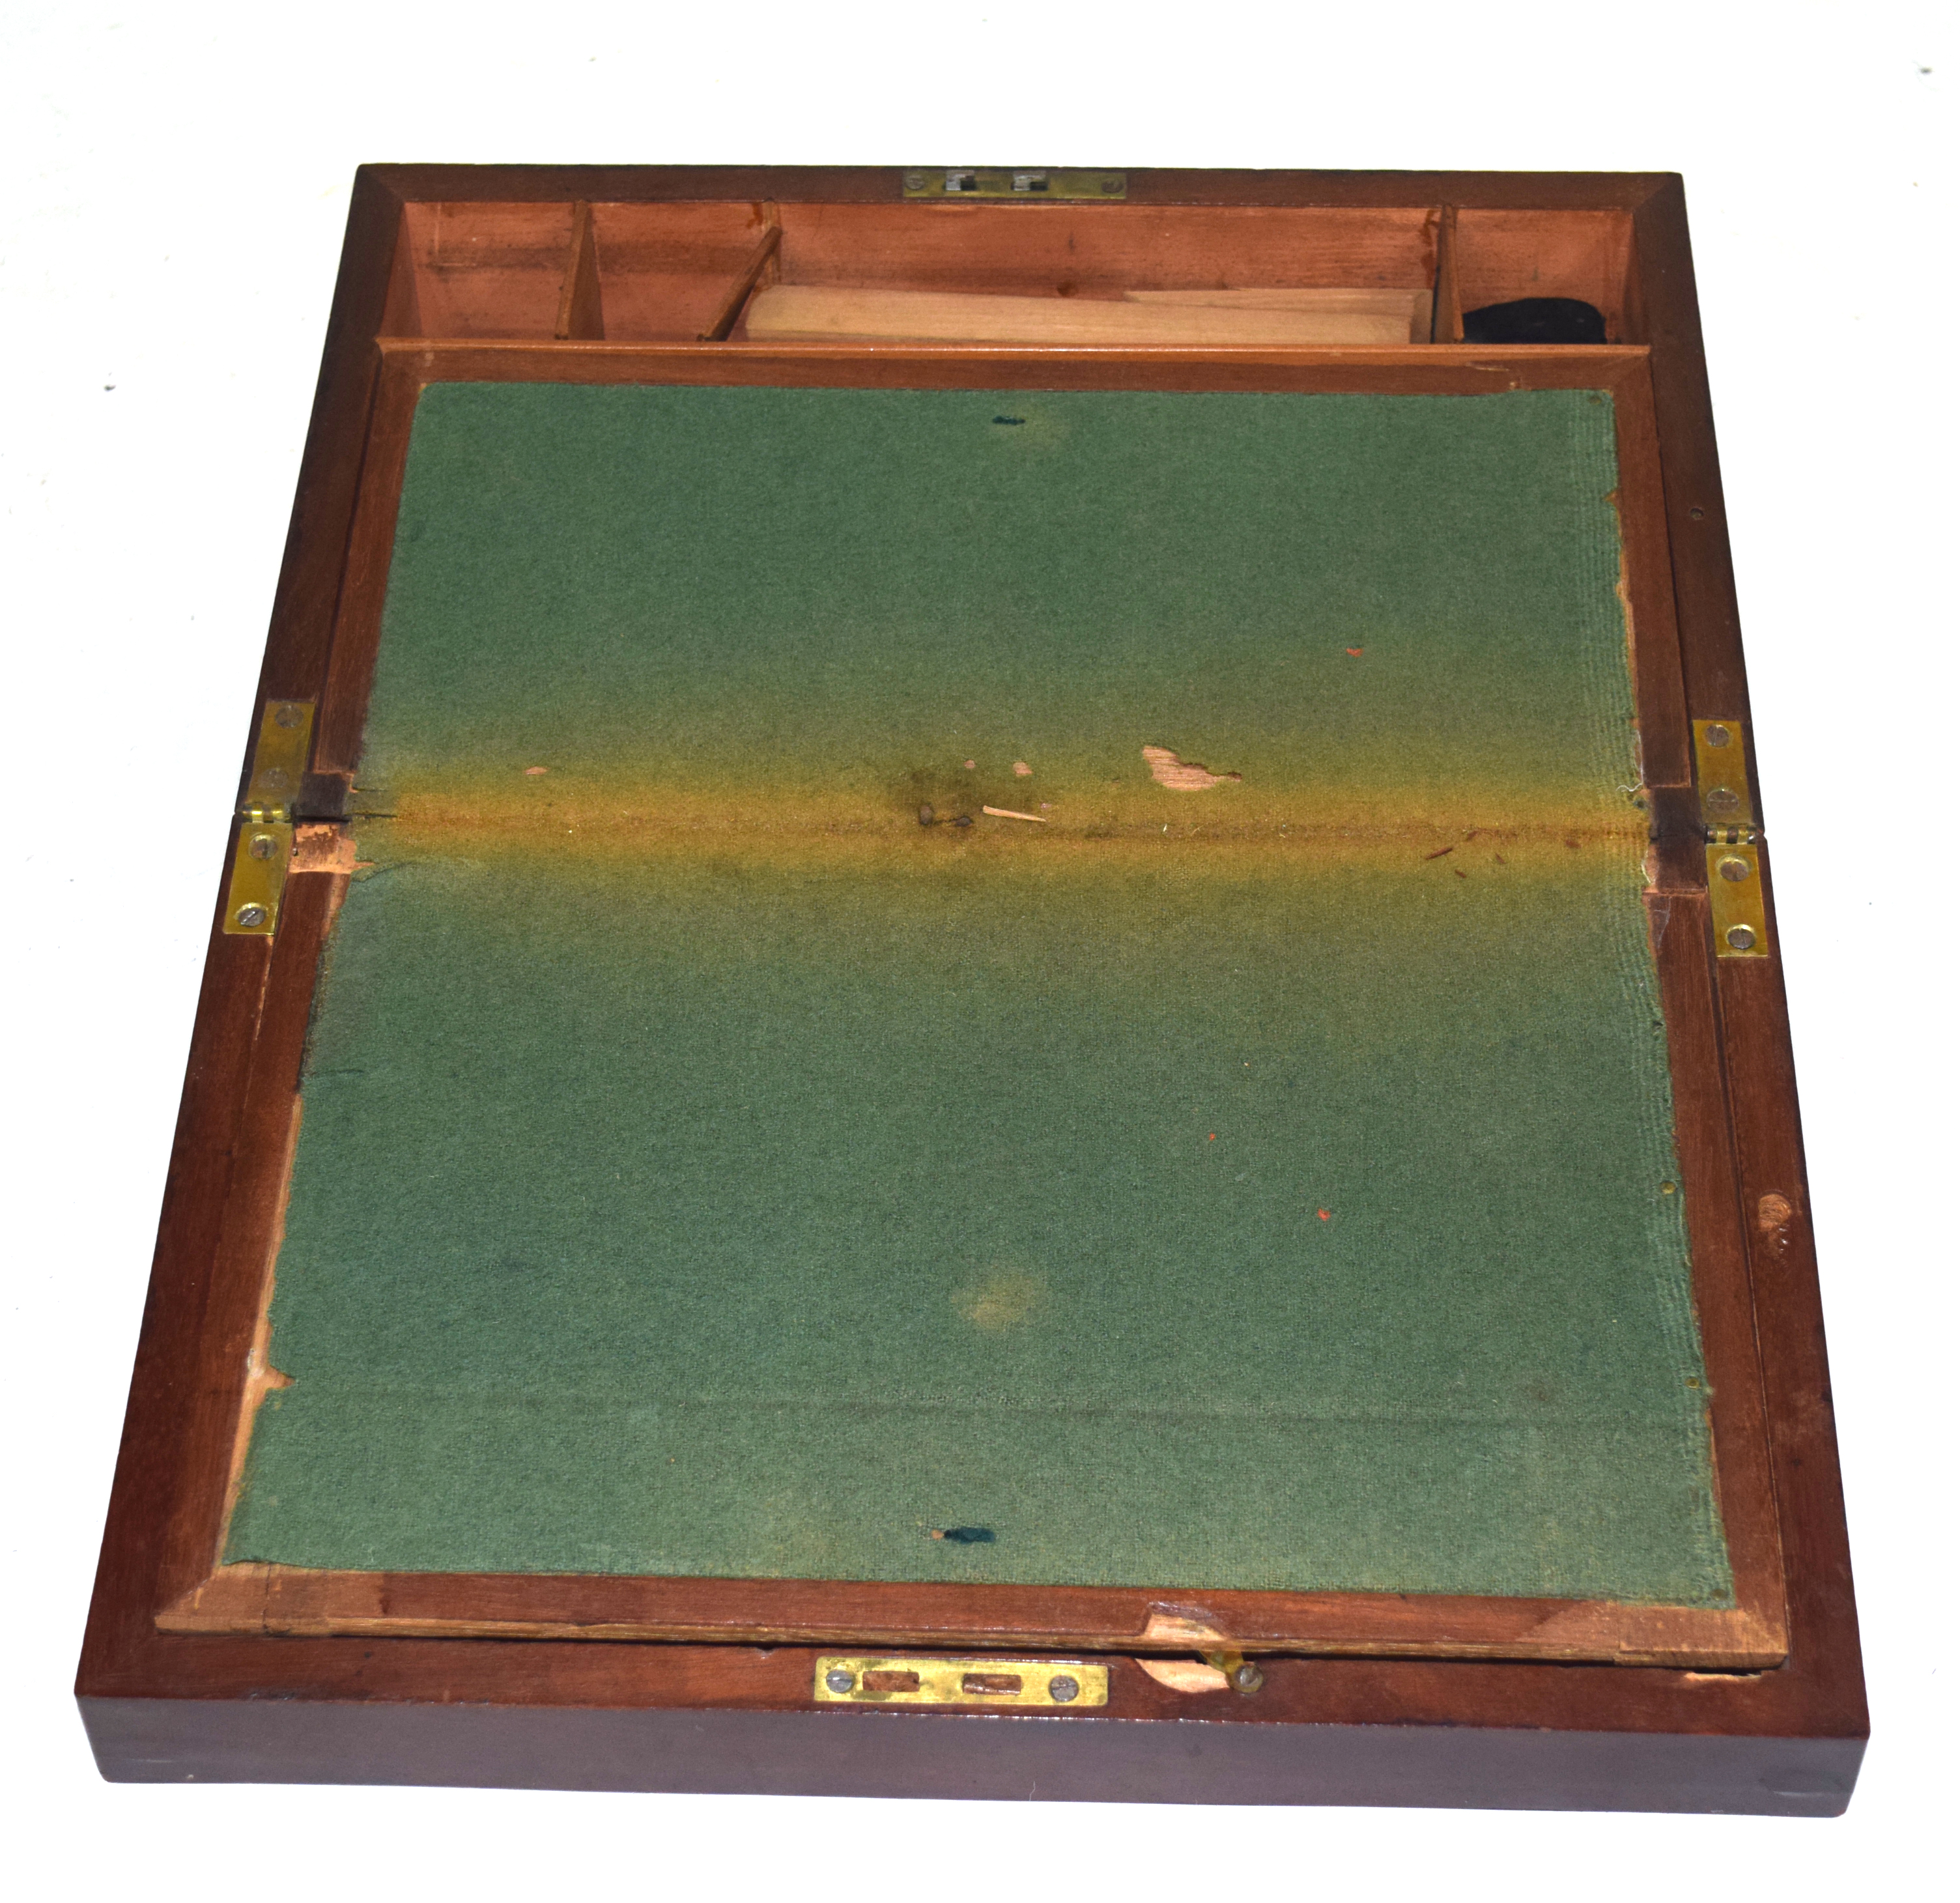 19th century mahogany writing box of typical rectangular form fitted with brass carry handles,